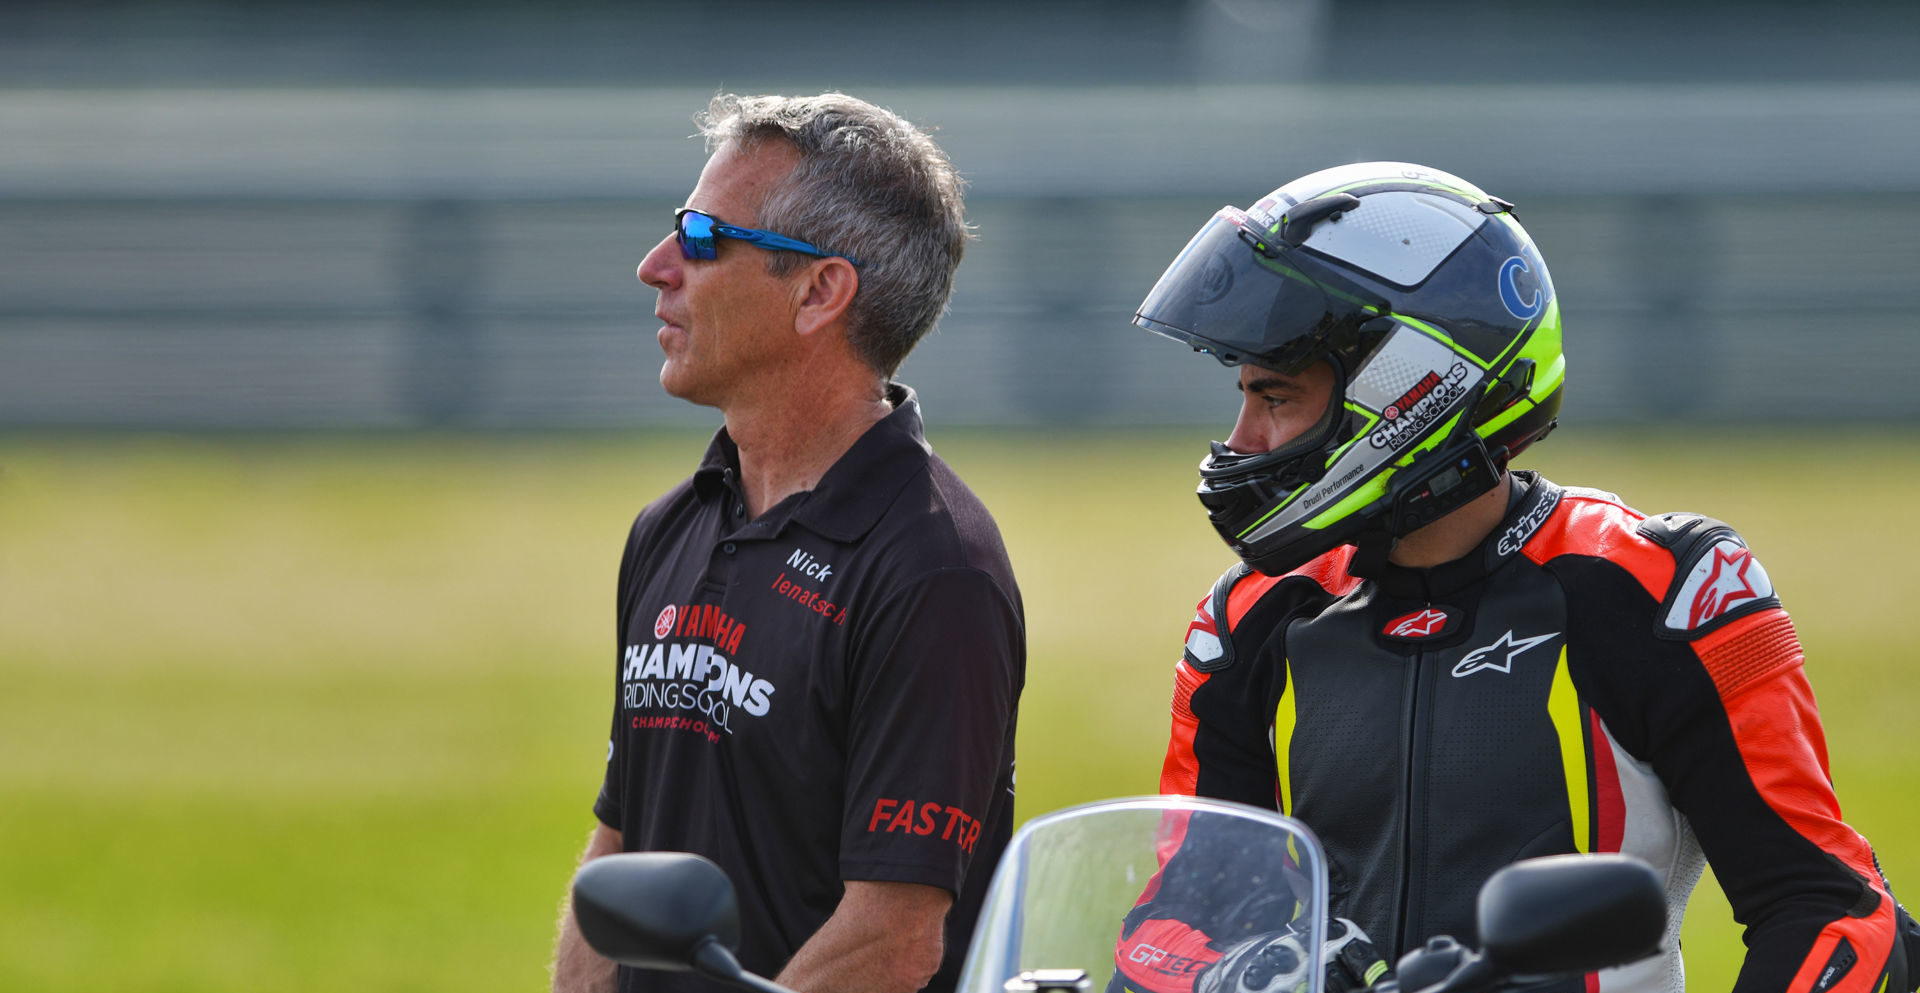 Yamaha Champions Riding School's (YCRS) Nick Ienatsch (left) and Chris Peris (right). Photo courtesy of YCRS.